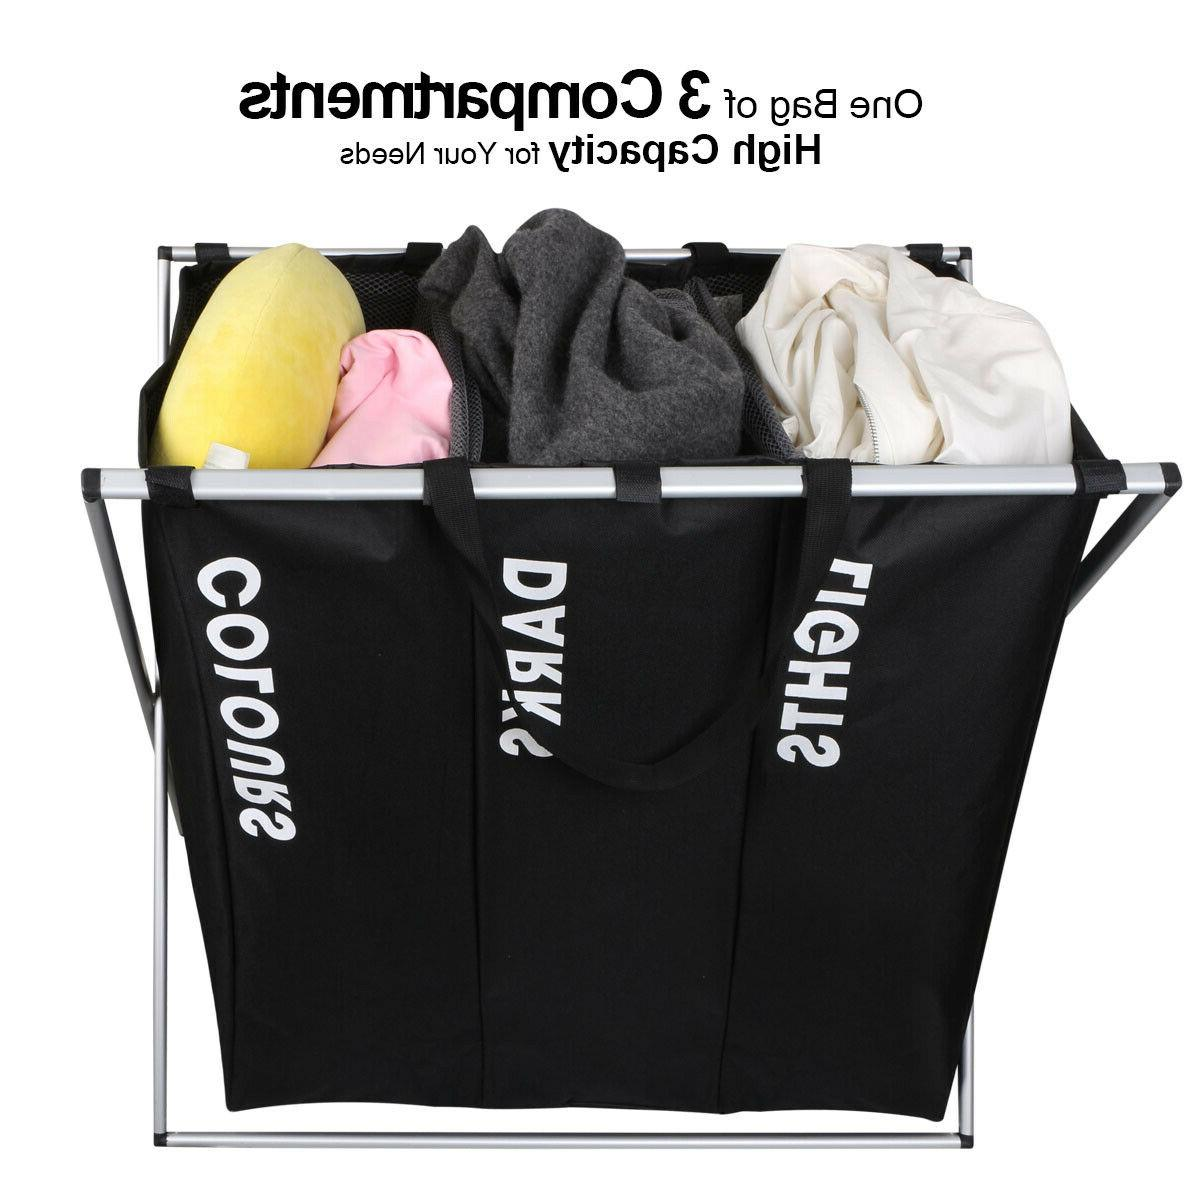 3 Basket for Laundry Wash Clothes